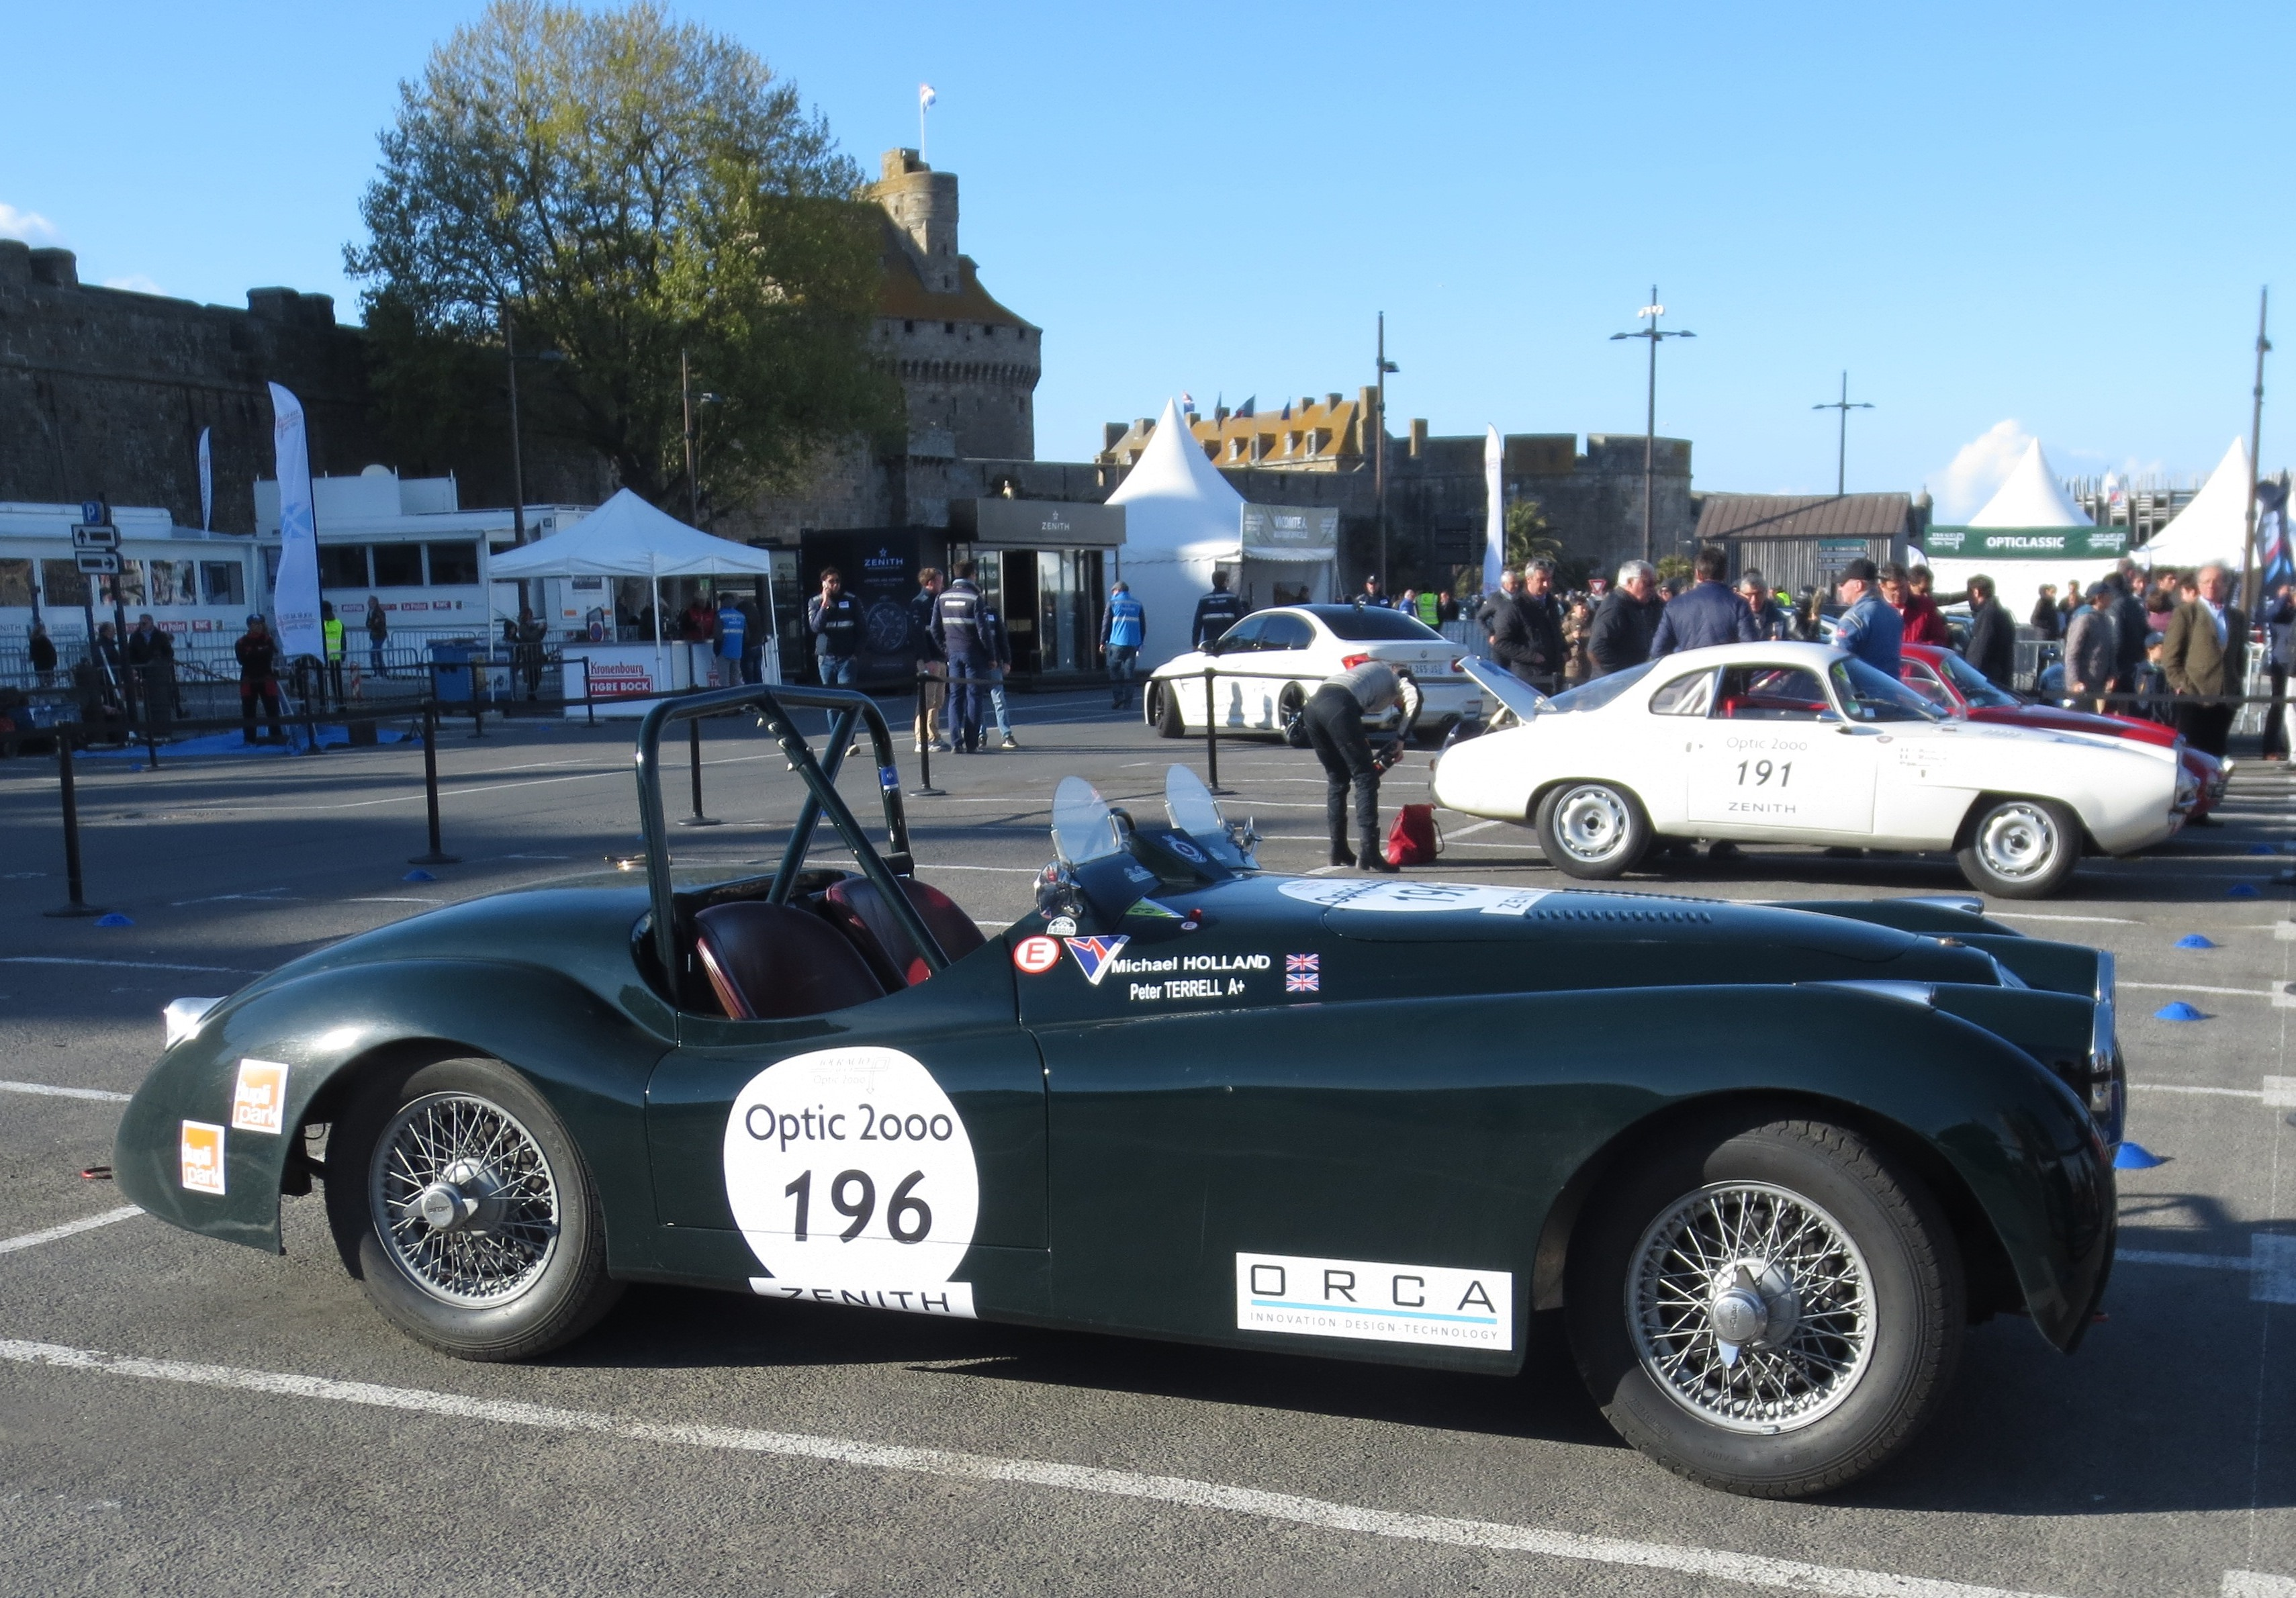 Terrell-Holland - Jaguar-XK-120 - 2017 - Saint-Malo - Tour-Auto - Photo-Thierry-Le-Bras